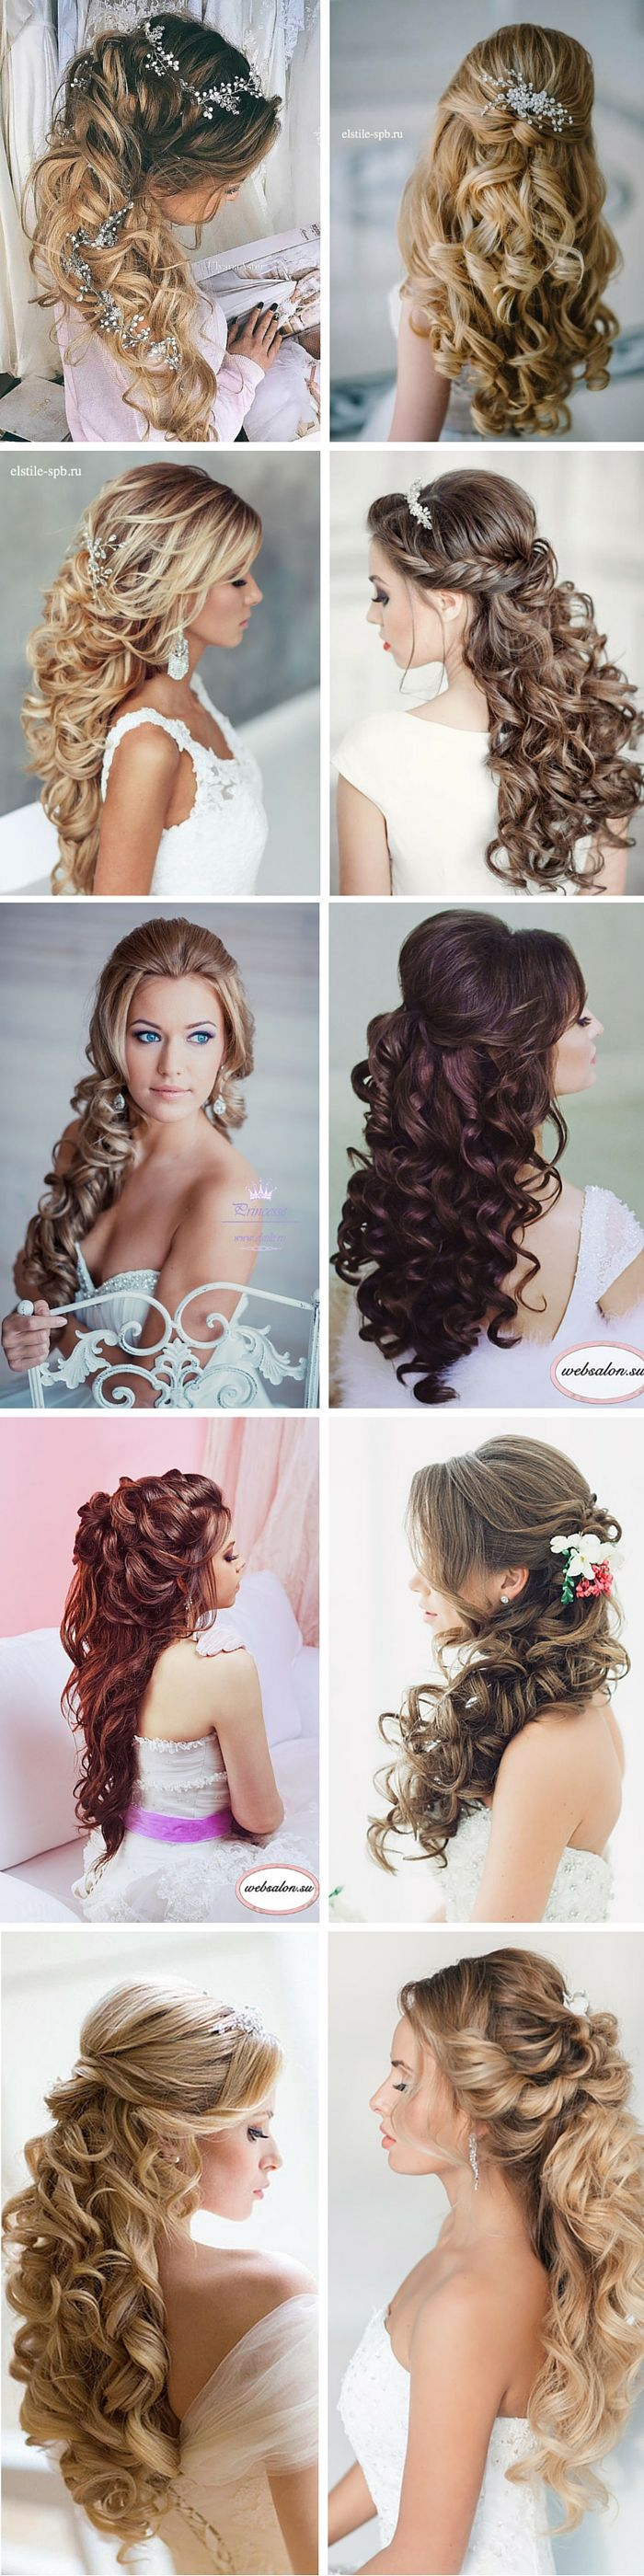 Pleasant 36 Half Up Half Down Wedding Hairstyles Ideas Thick Hair Hairstyle Inspiration Daily Dogsangcom